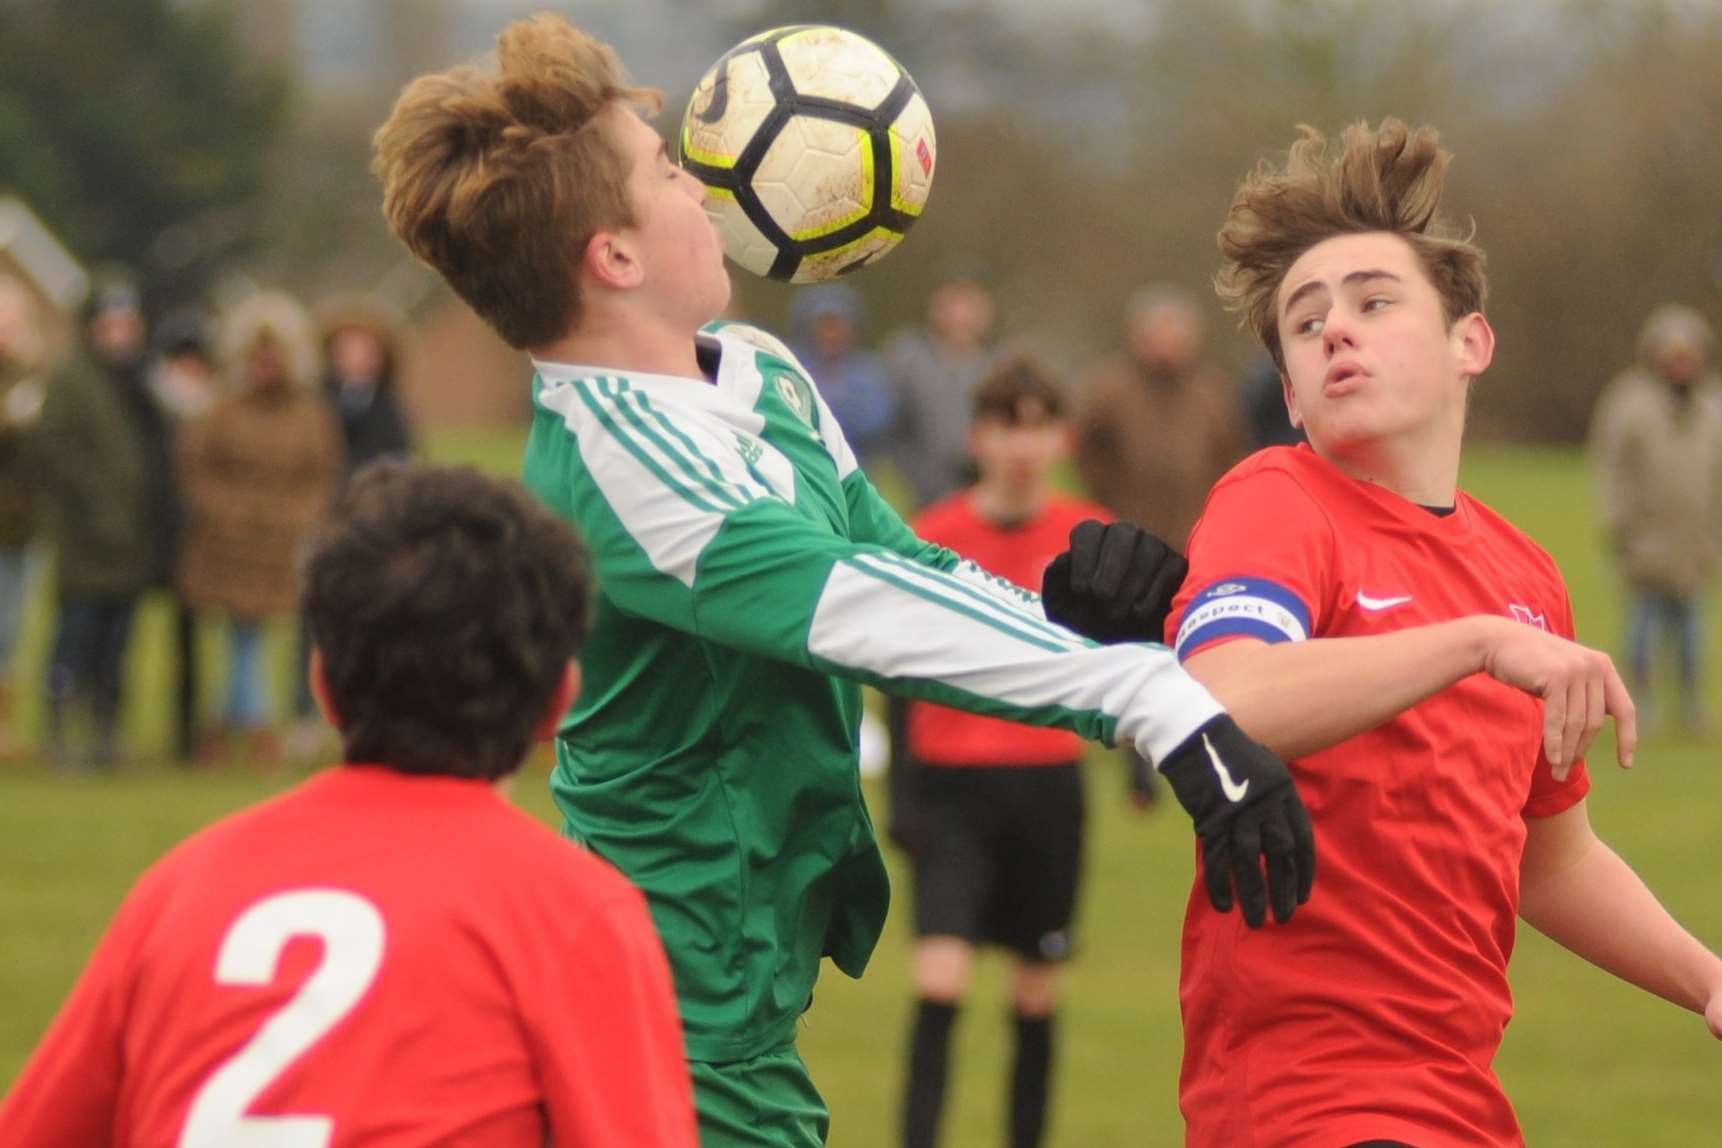 Thamesview double up to thwart Eagles in Under-16 Division 2 Picture: Steve Crispe